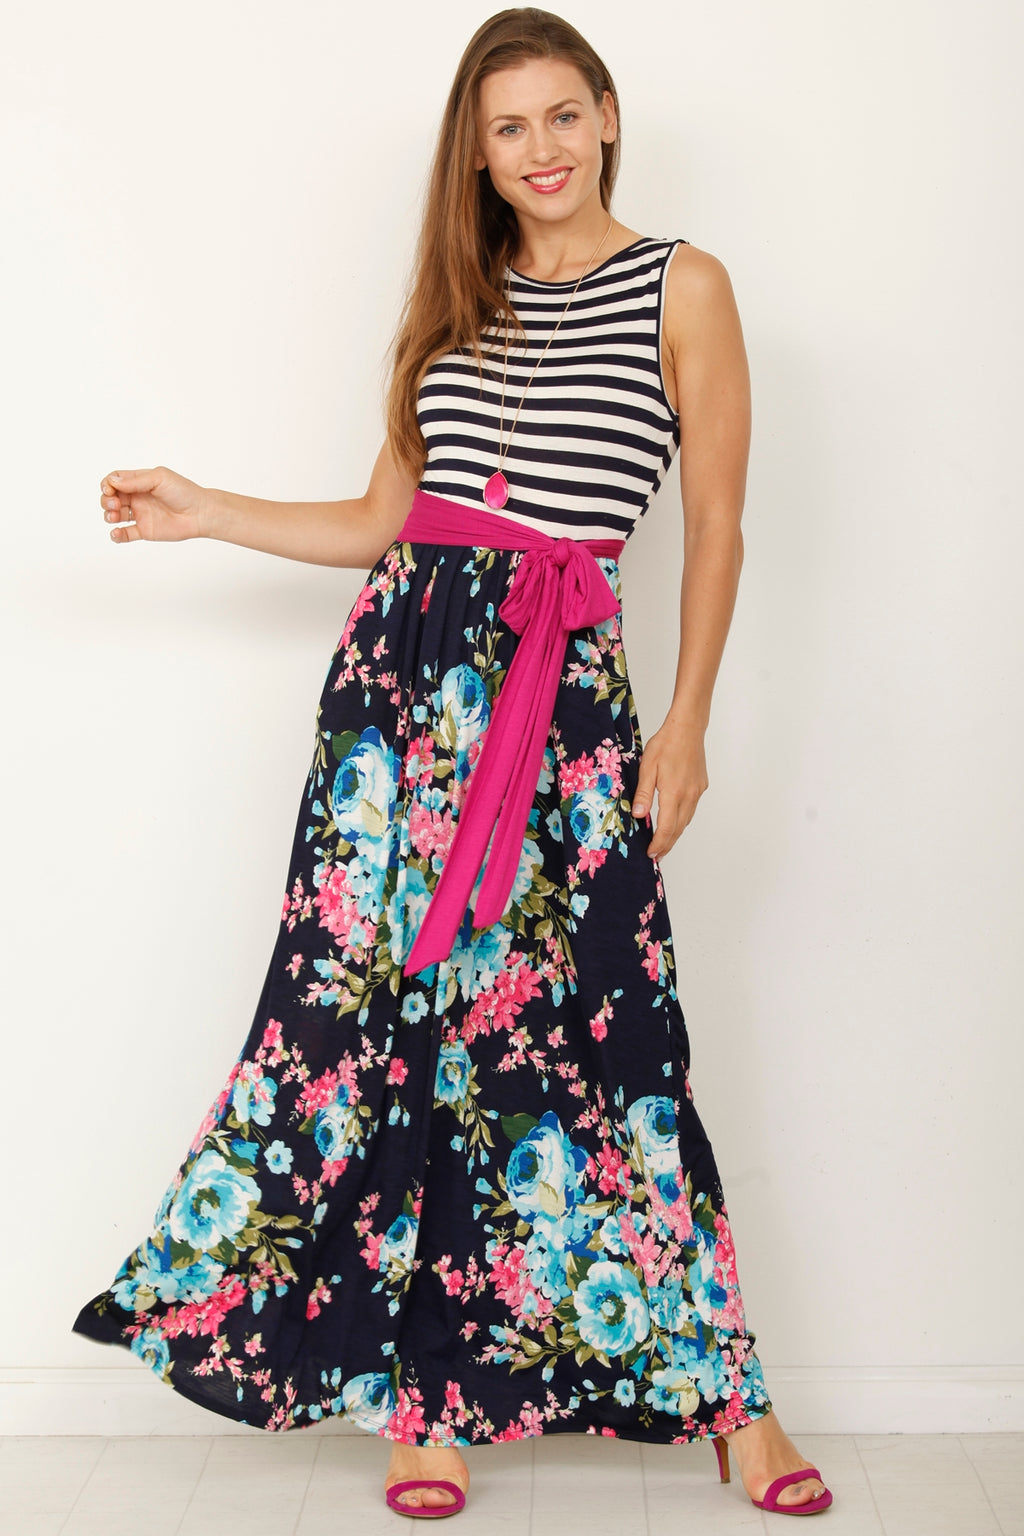 Stripe Sleeveless Navy Aqua Floral Maxi Dress with Sash_S